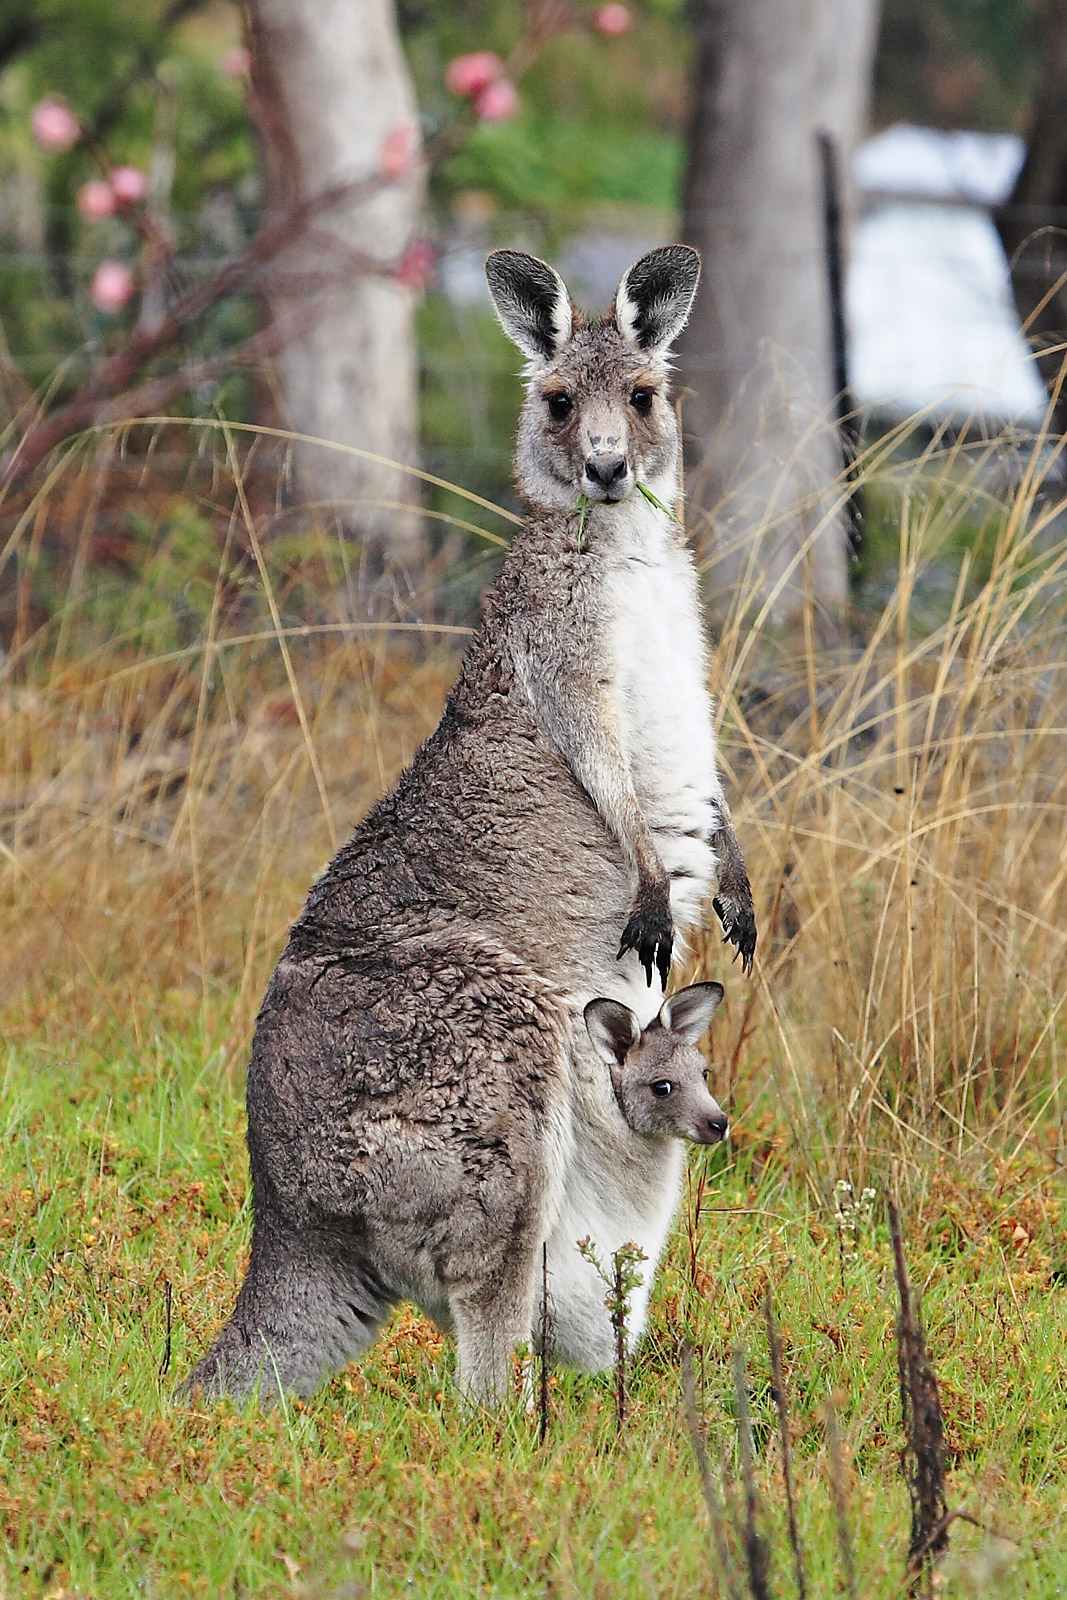 Female Eastern grey kangaroo with joey in pouch. Photo taken on October 15, 2006.